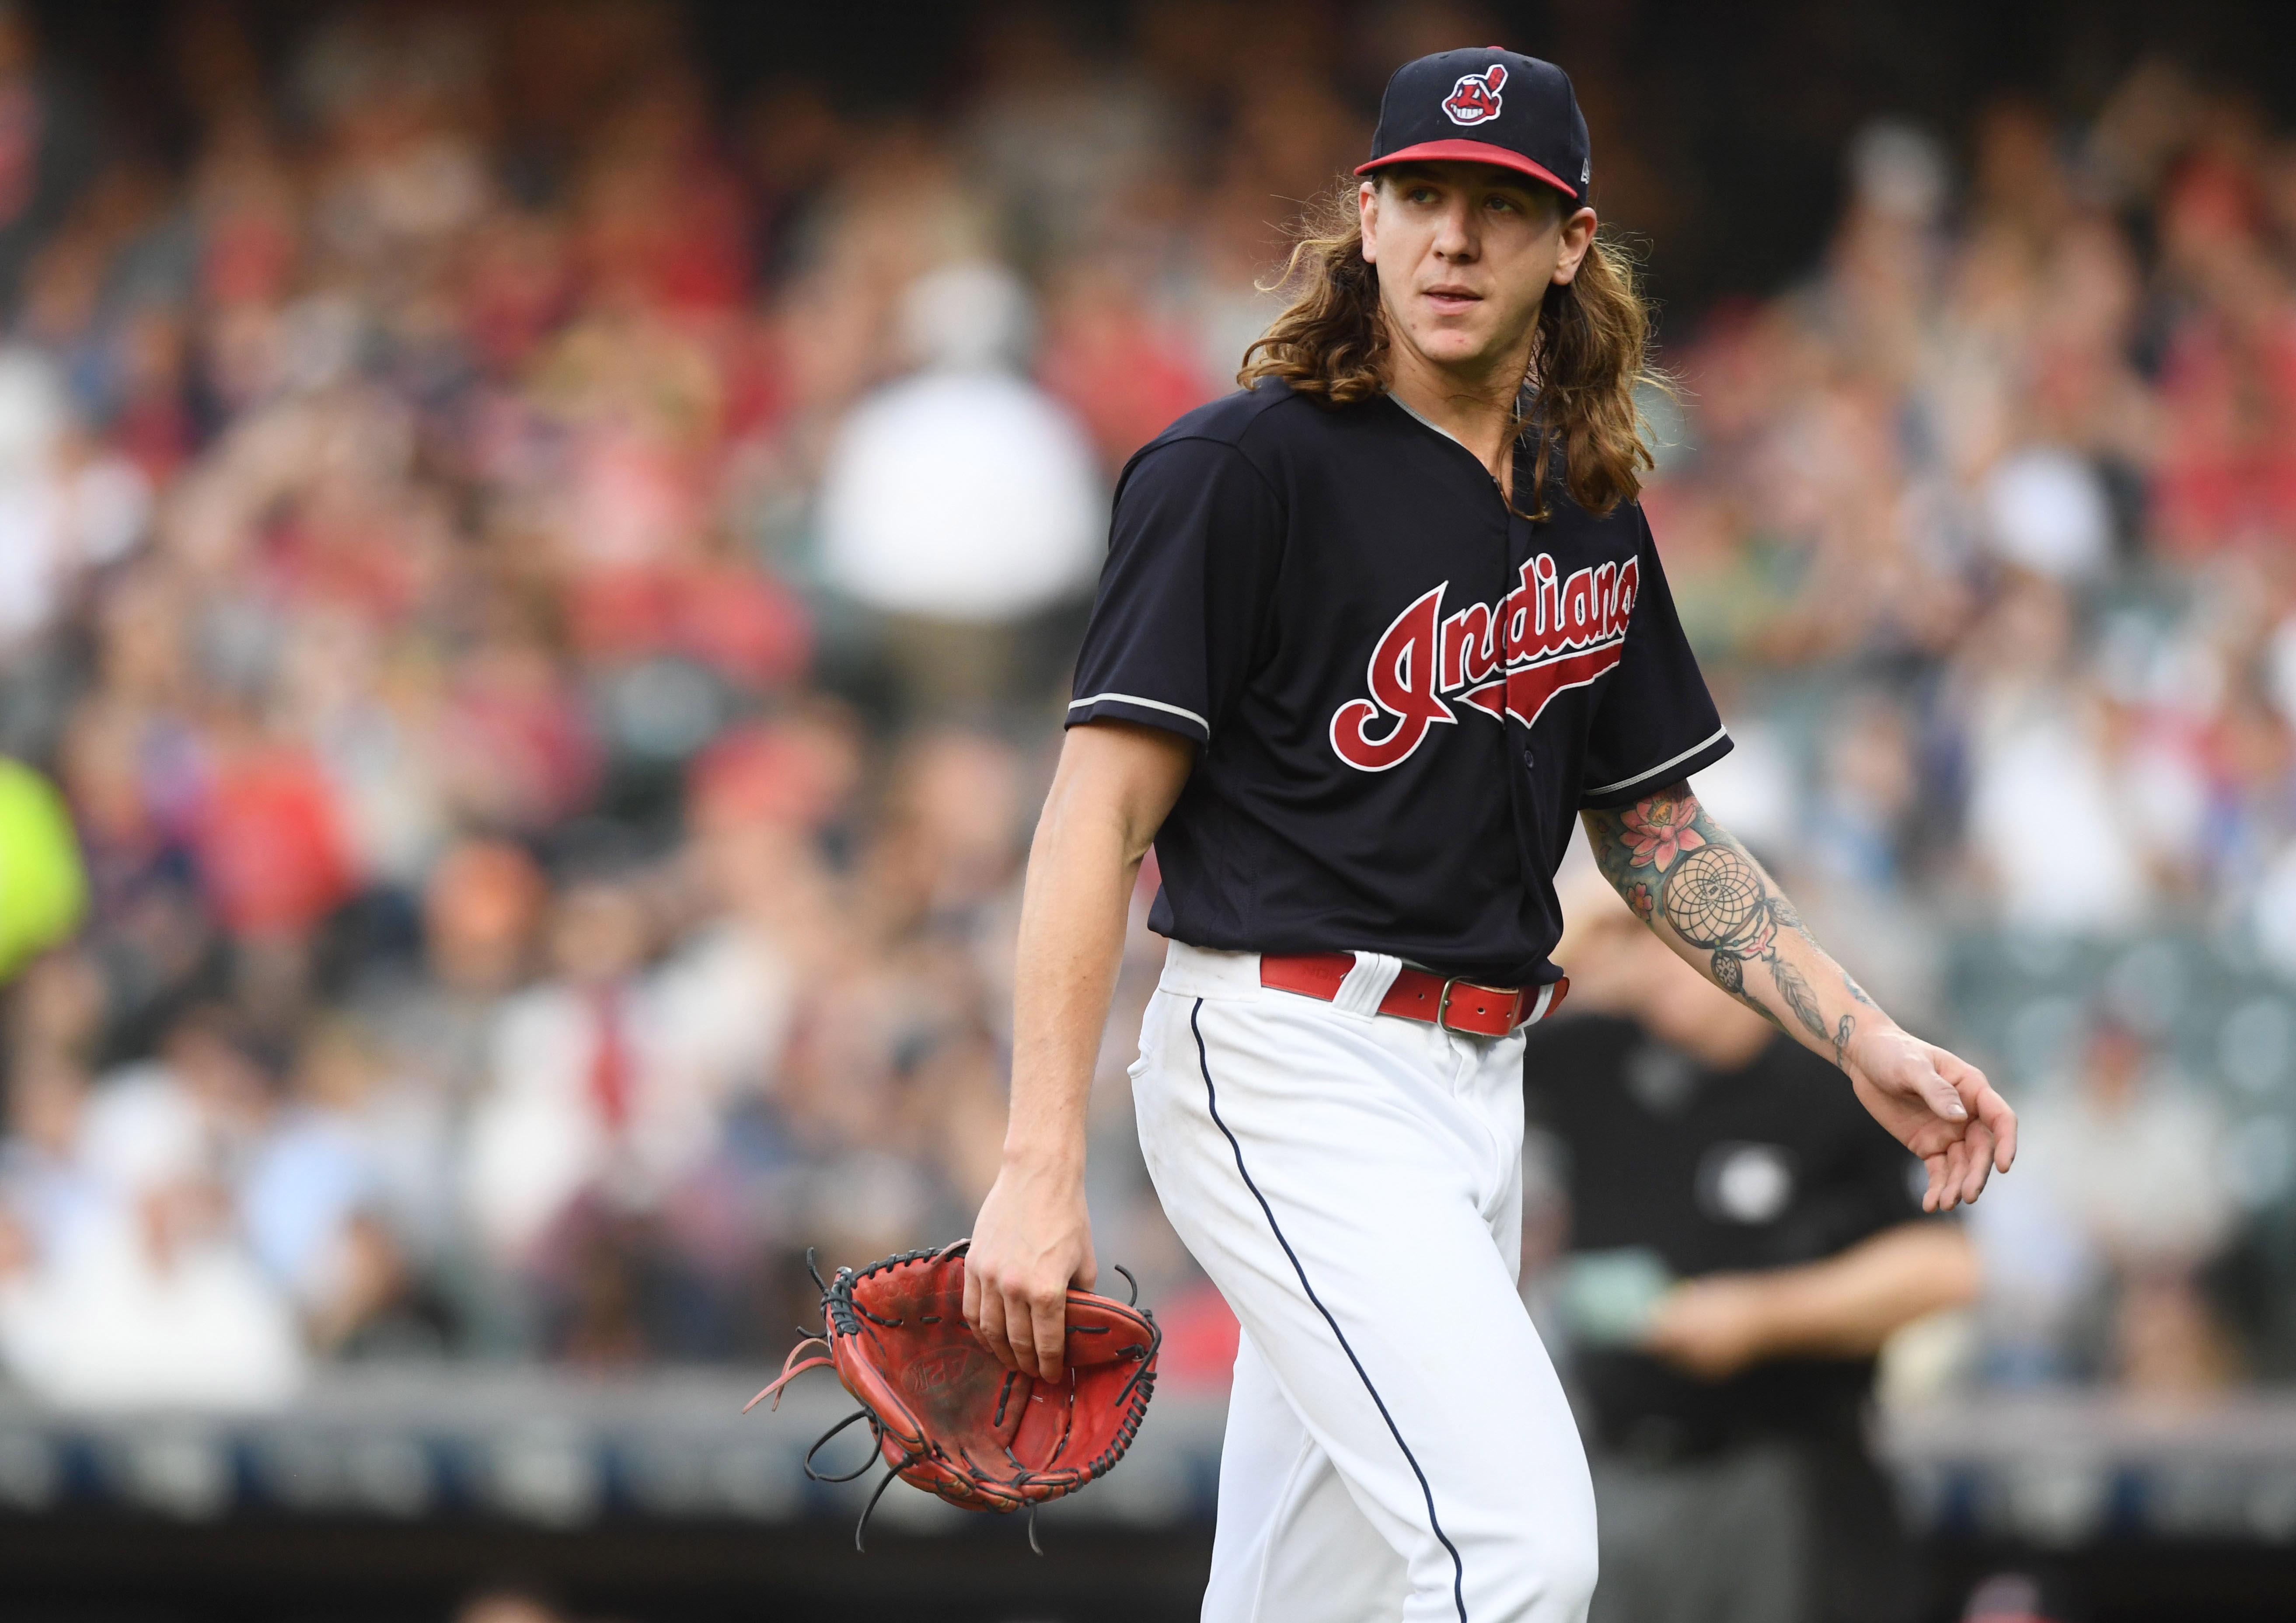 'It Sucks That We Were Right:' Mike Clevinger Details Frustrations About Astros' Sign-Stealing Scheme